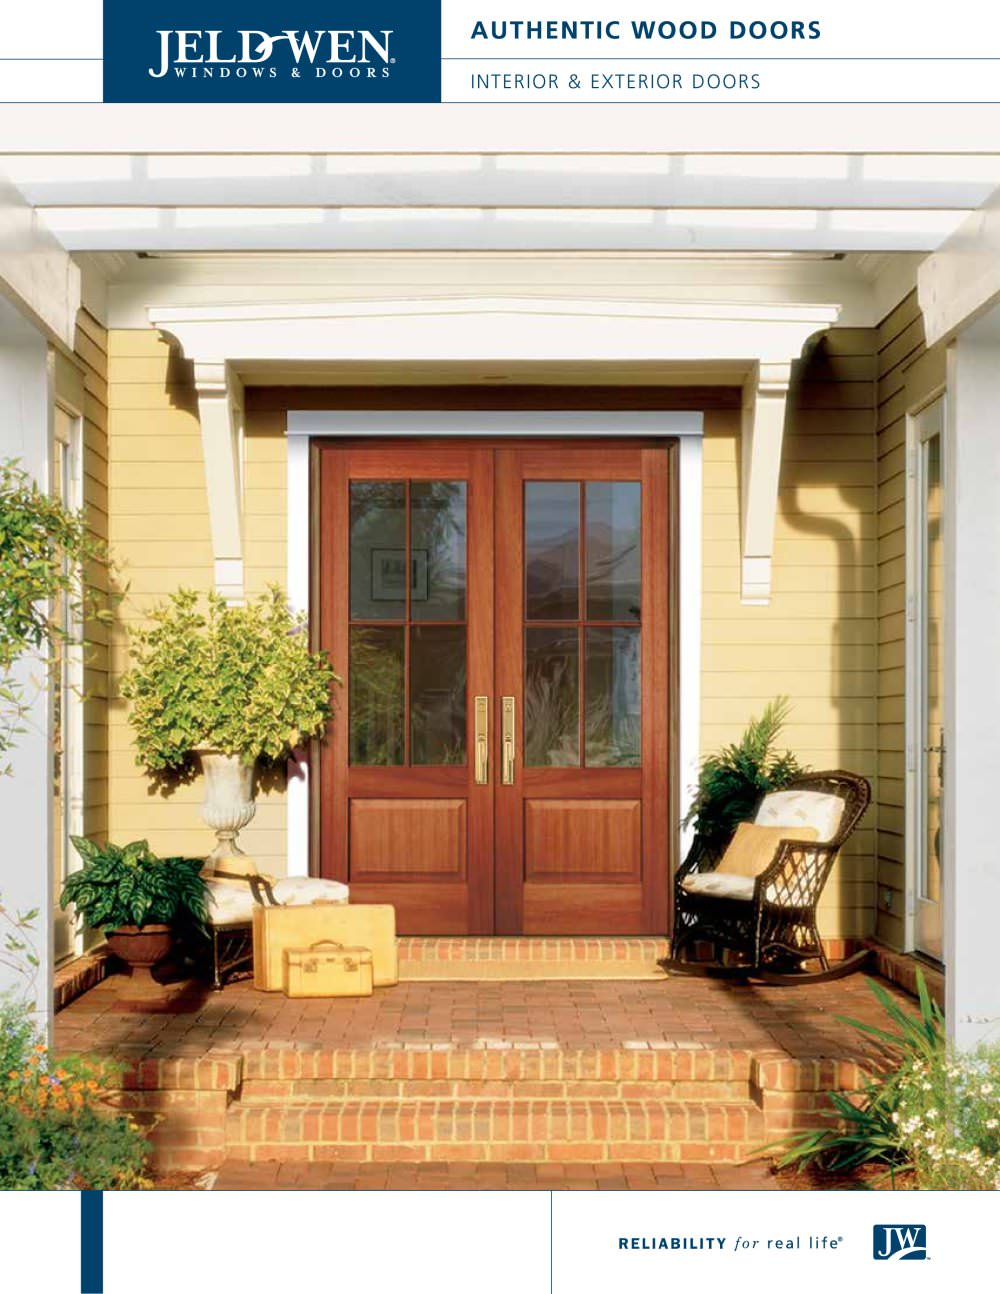 Authentic Wood Exterior Doors - JELD-WEN - PDF Catalogues ...